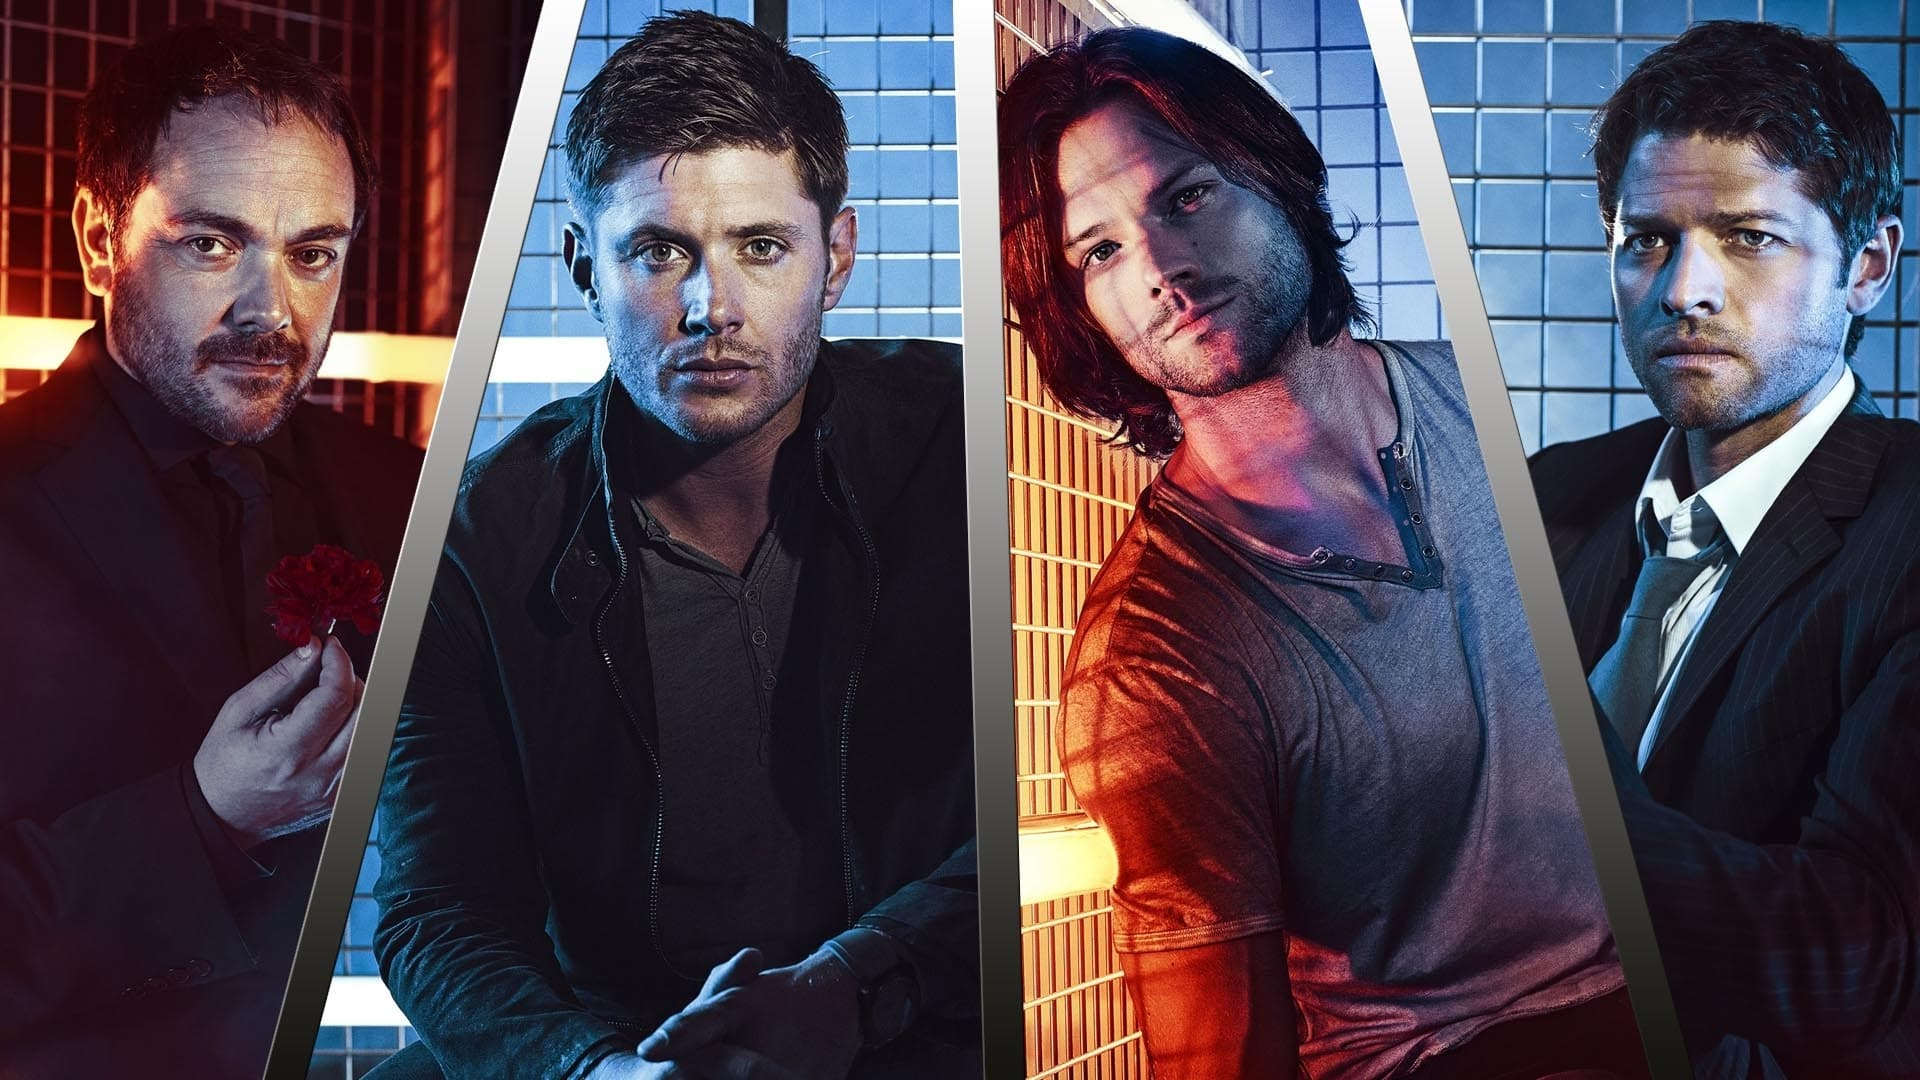 Supernatural - Season 4 Episode 18 The Monster at the End of this Book